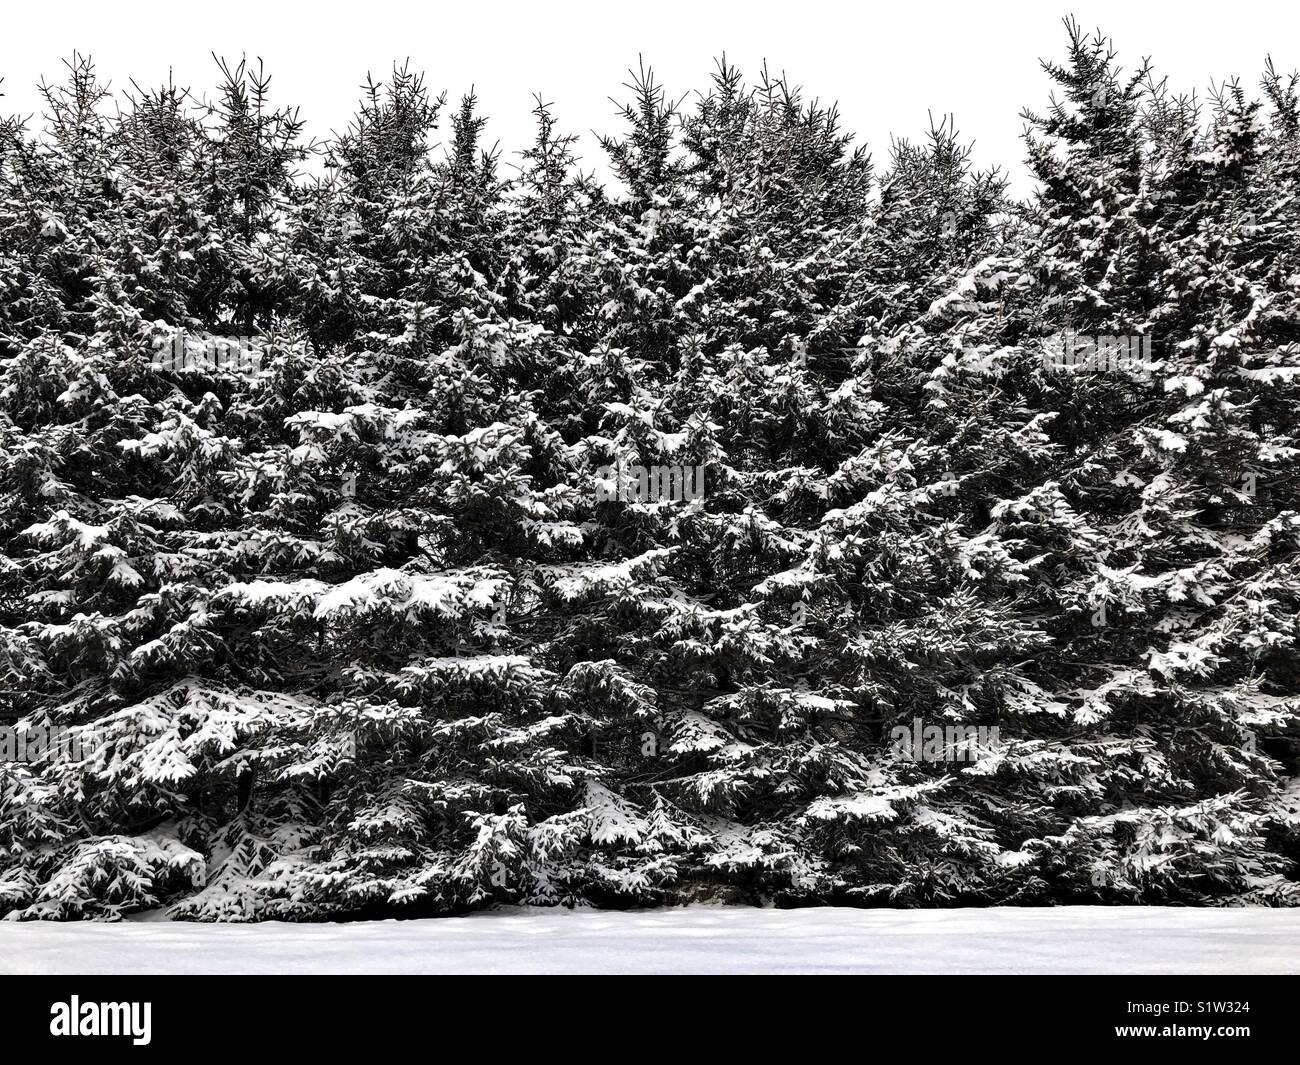 Wall of tall snow covered evergreen trees against a white overcast sky and fresh snow on the ground - Stock Image